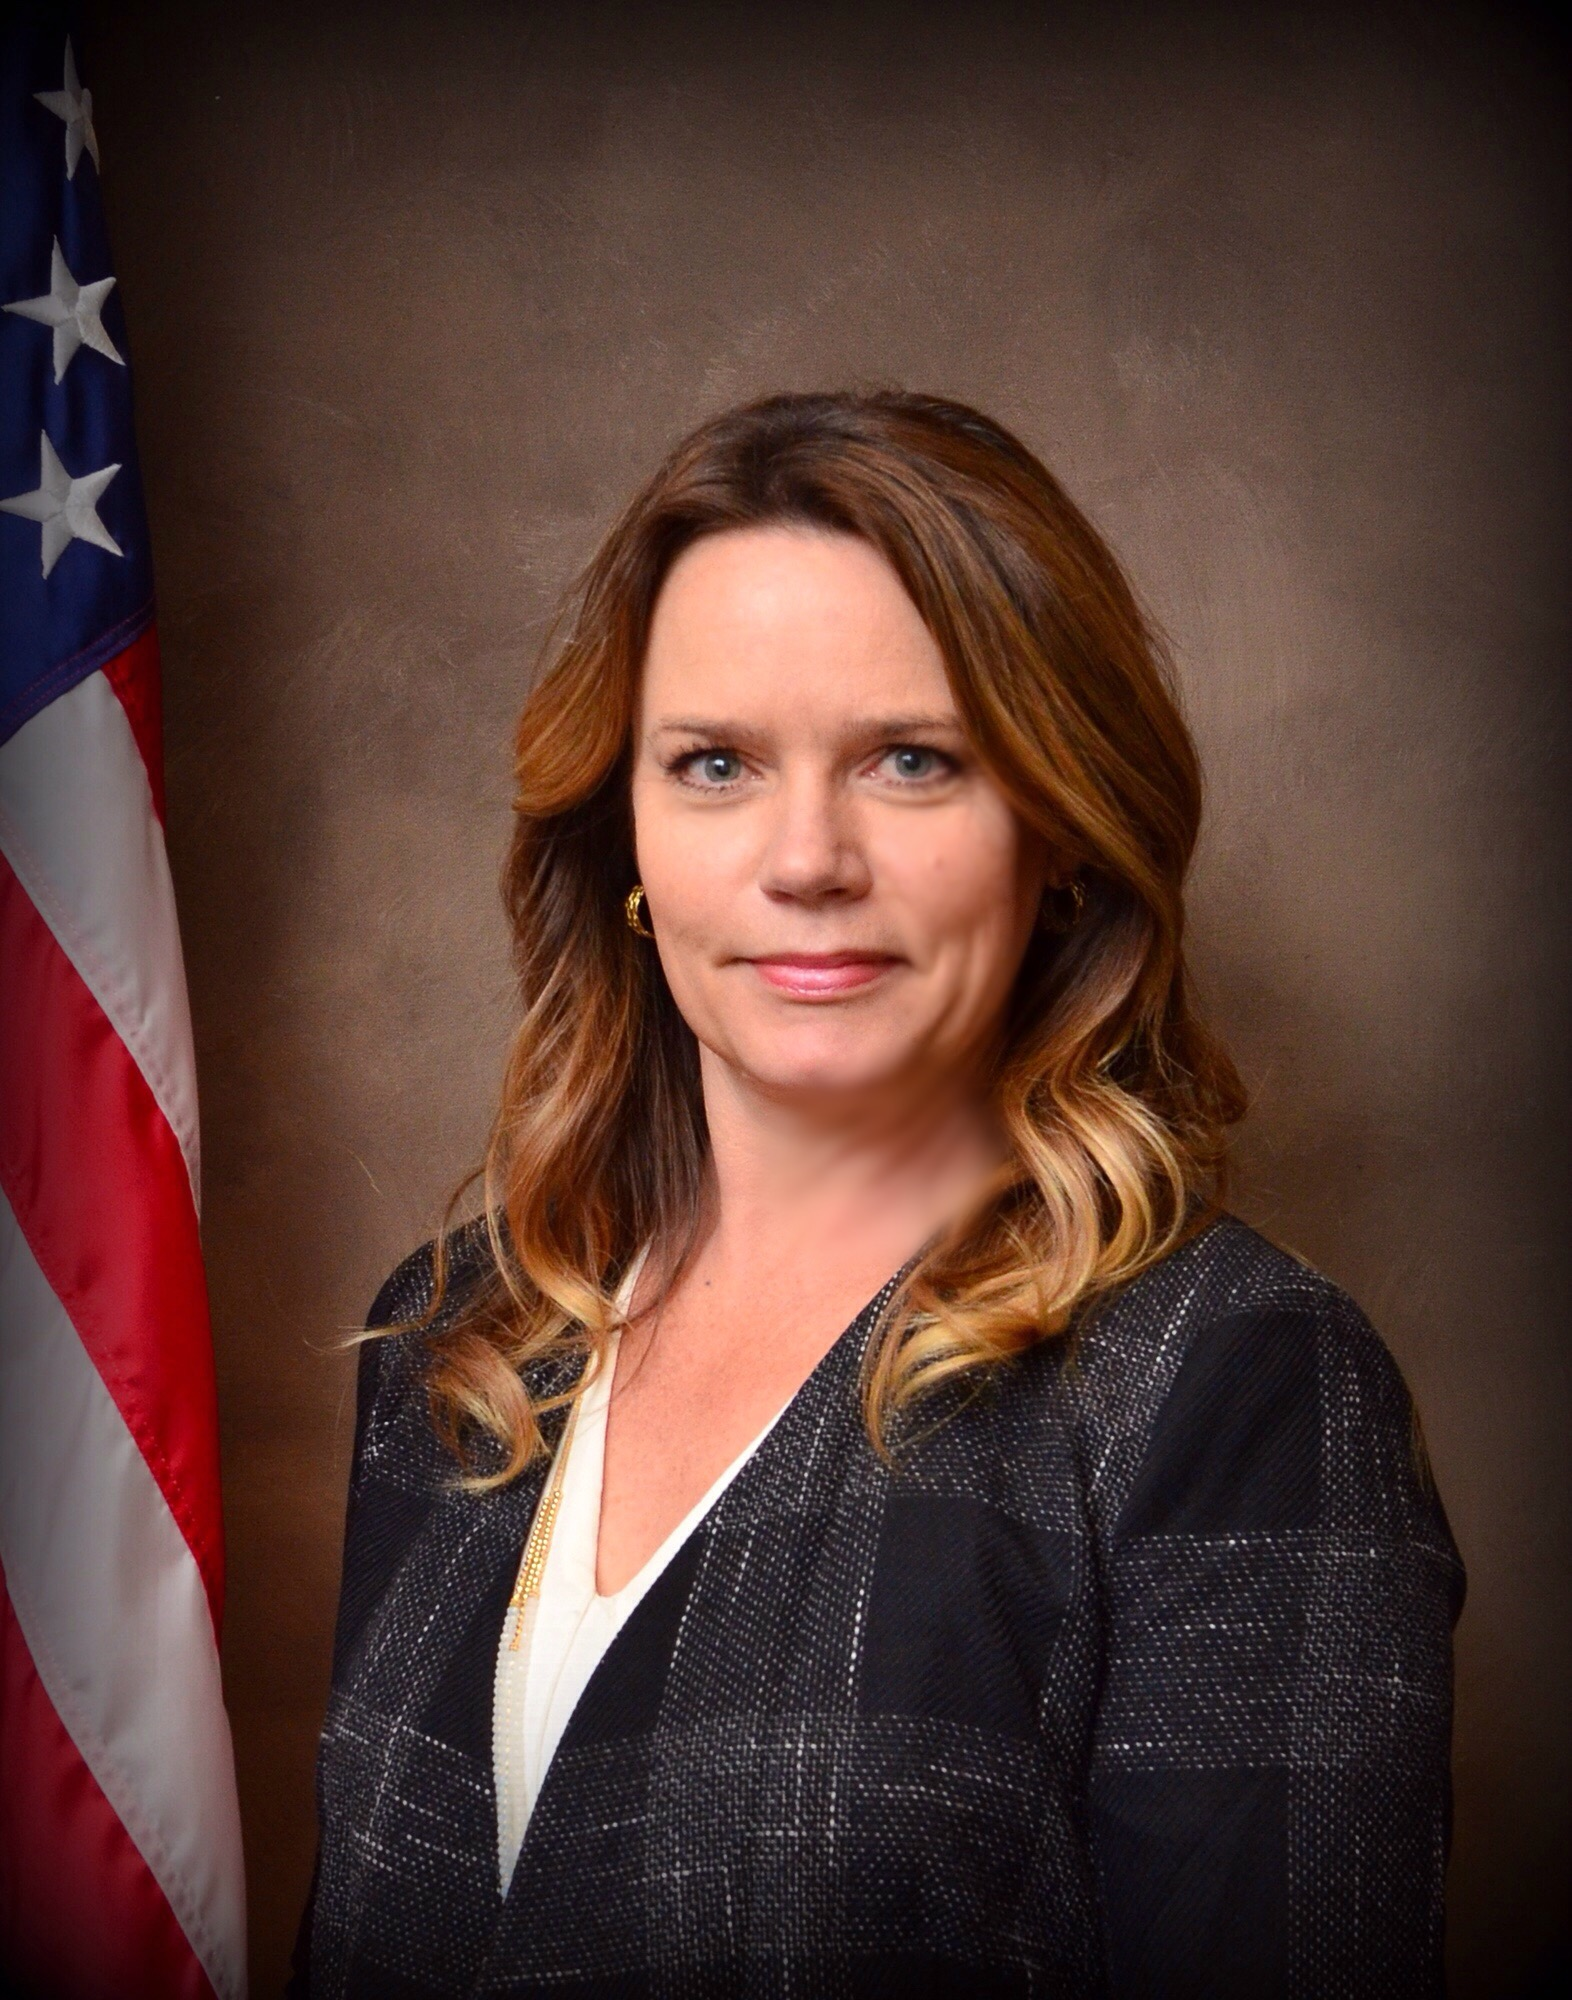 Kristy Rigby is the director of the Highway Safety Office